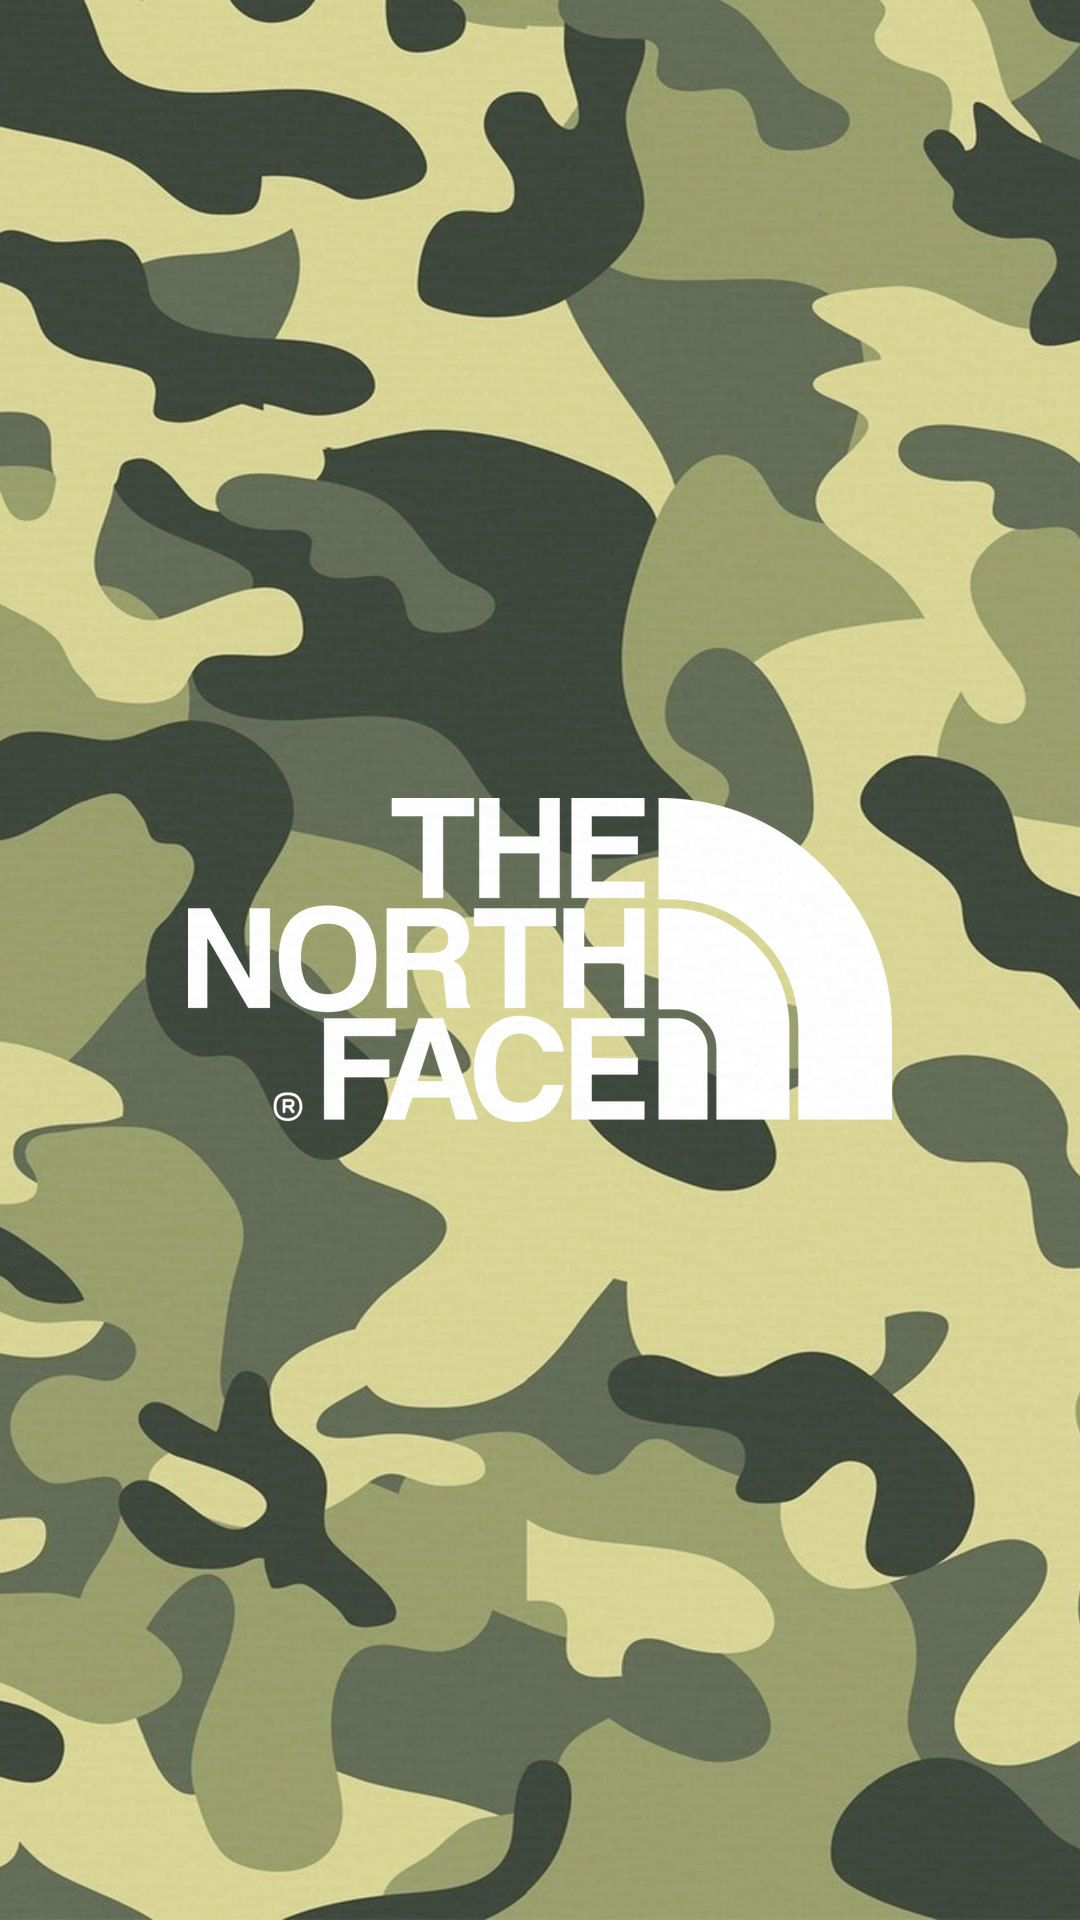 ザ・ノース・フェイス/THE NORTH FACE22 Nike wallpaper, Graffiti